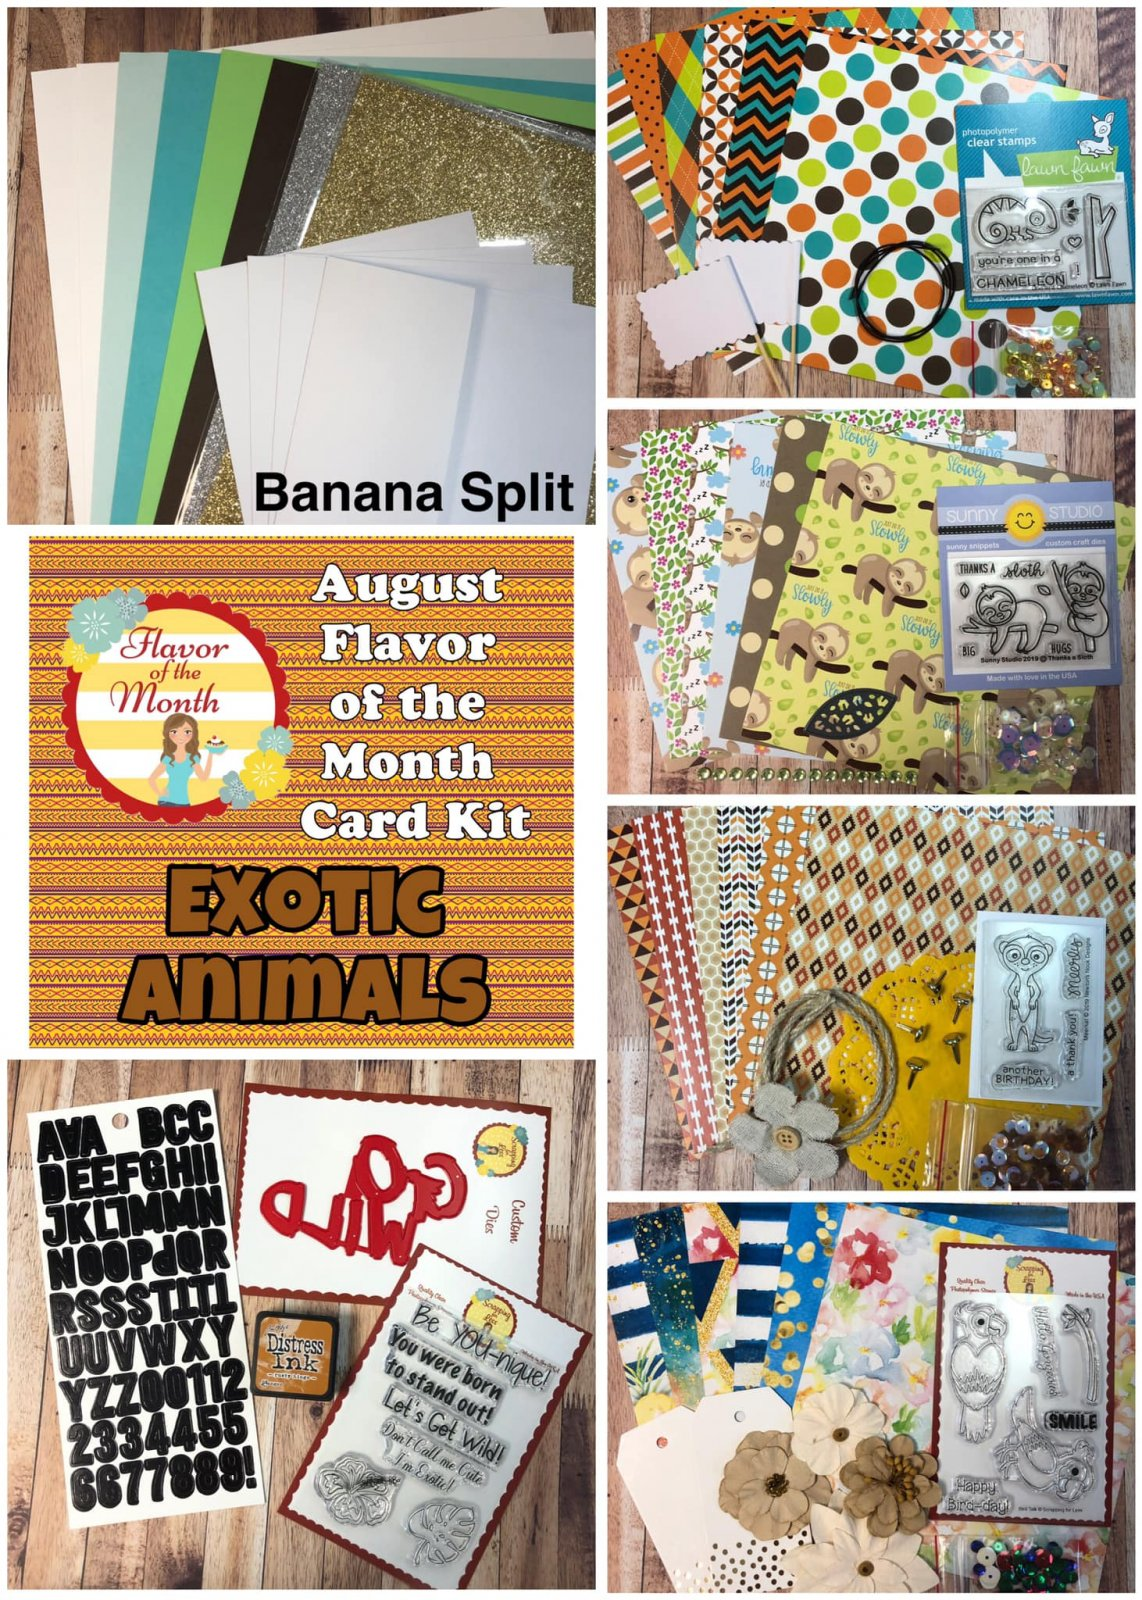 August Banana Split Flavor of the Month Exotic Animals